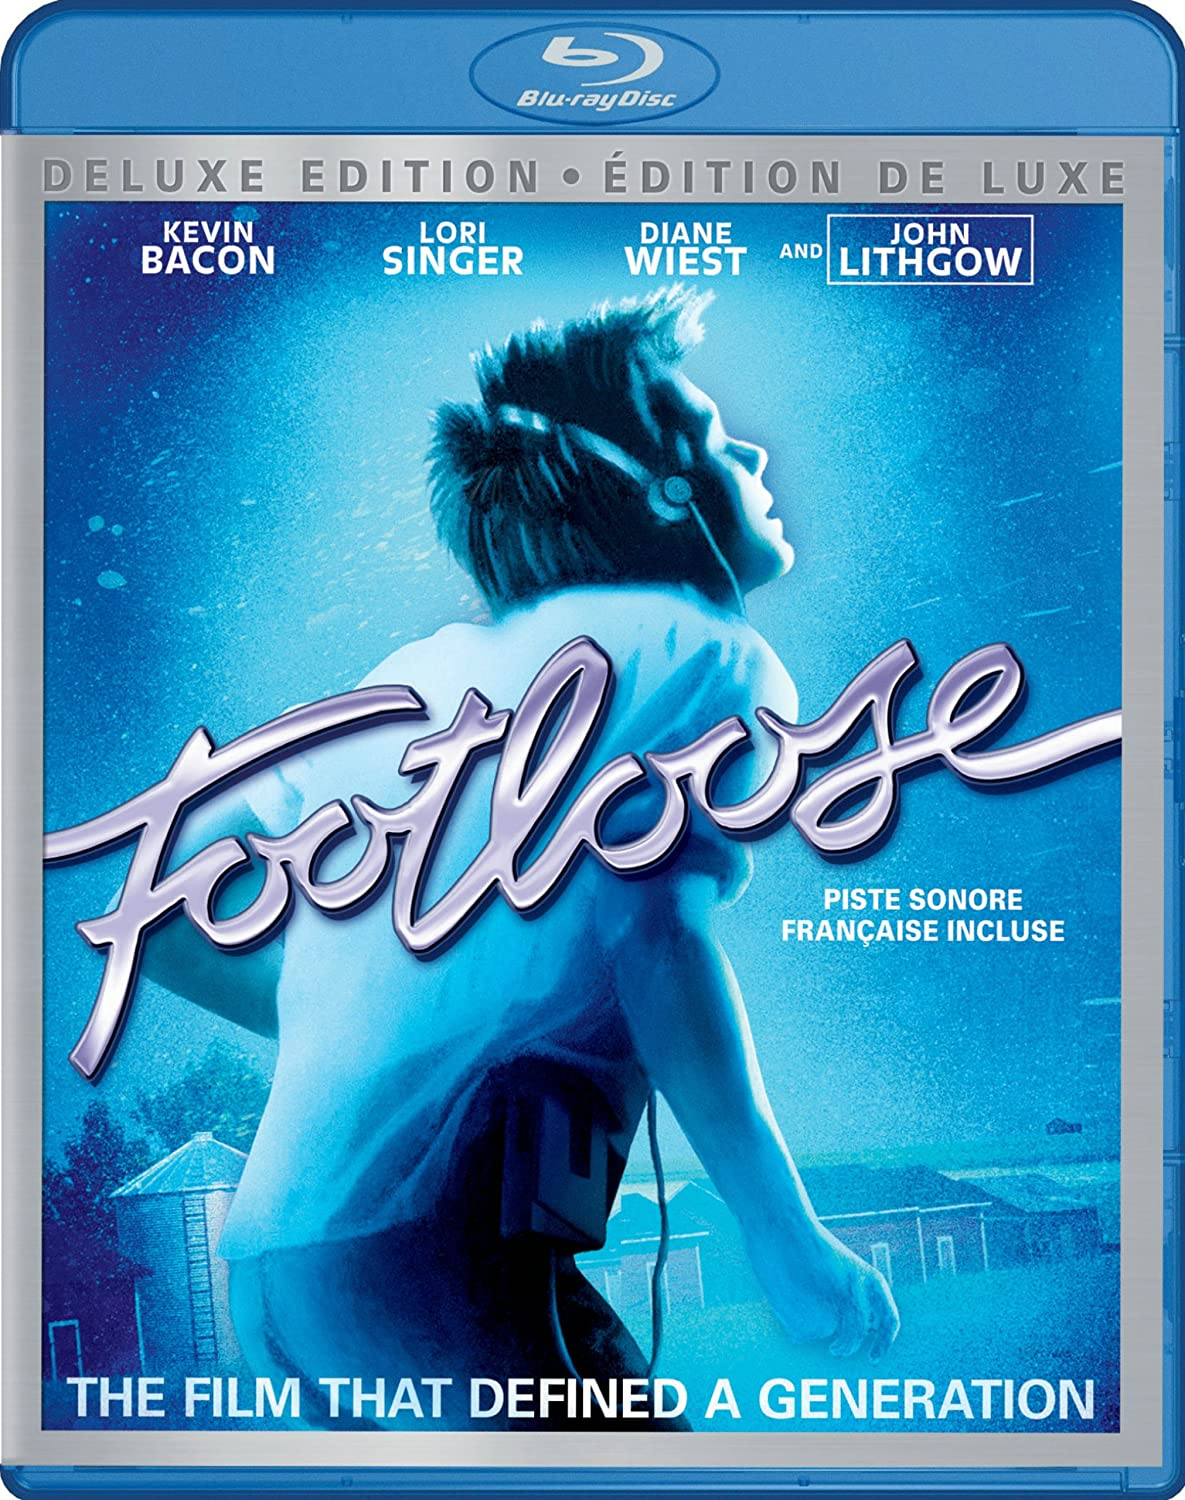 Footloose [Blu-ray] (Bilingual) Kevin Bacon Lori Singer John Lithgow Dianne Wiest